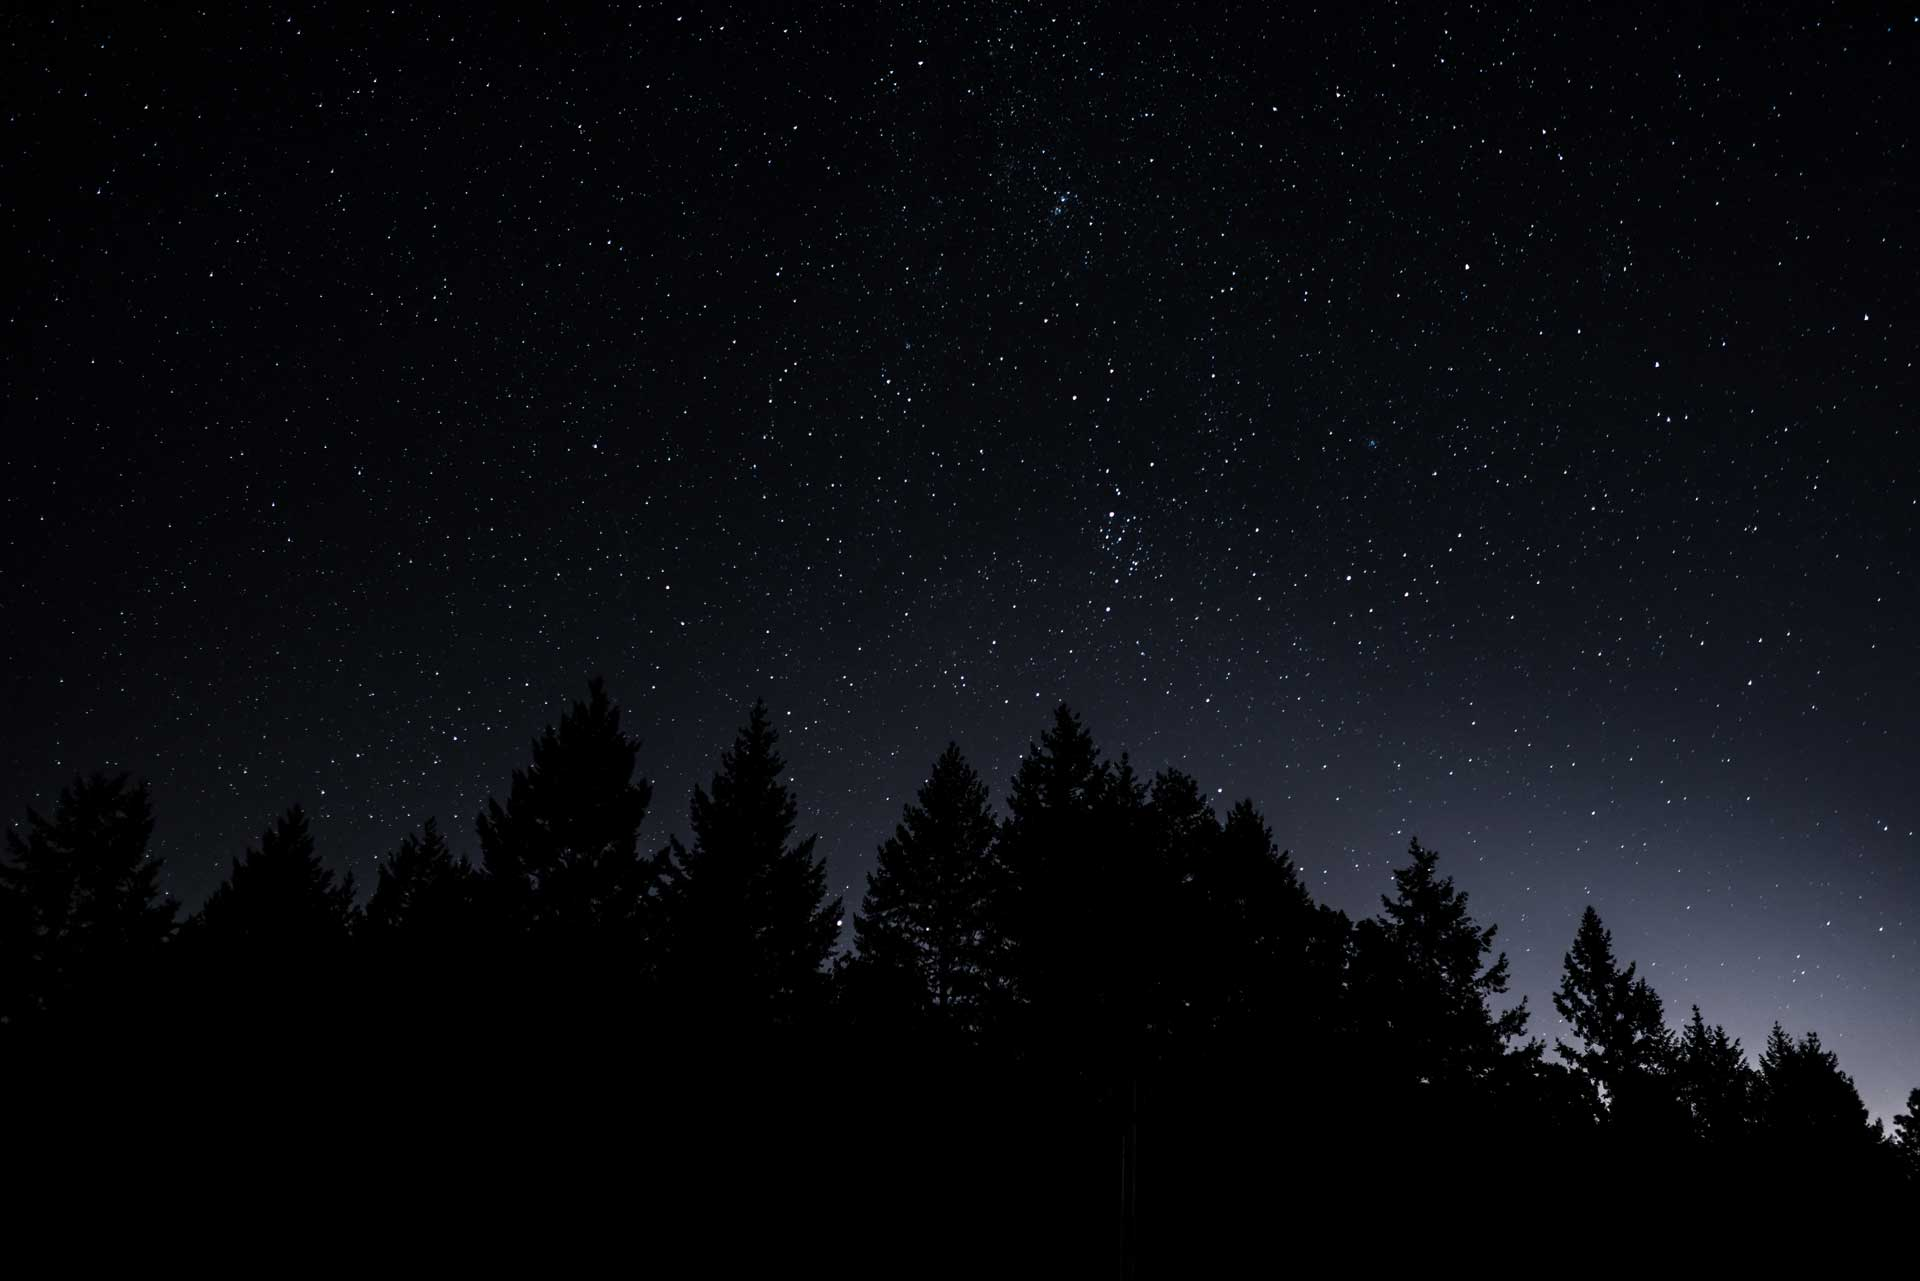 starry night sky with silhouette of trees